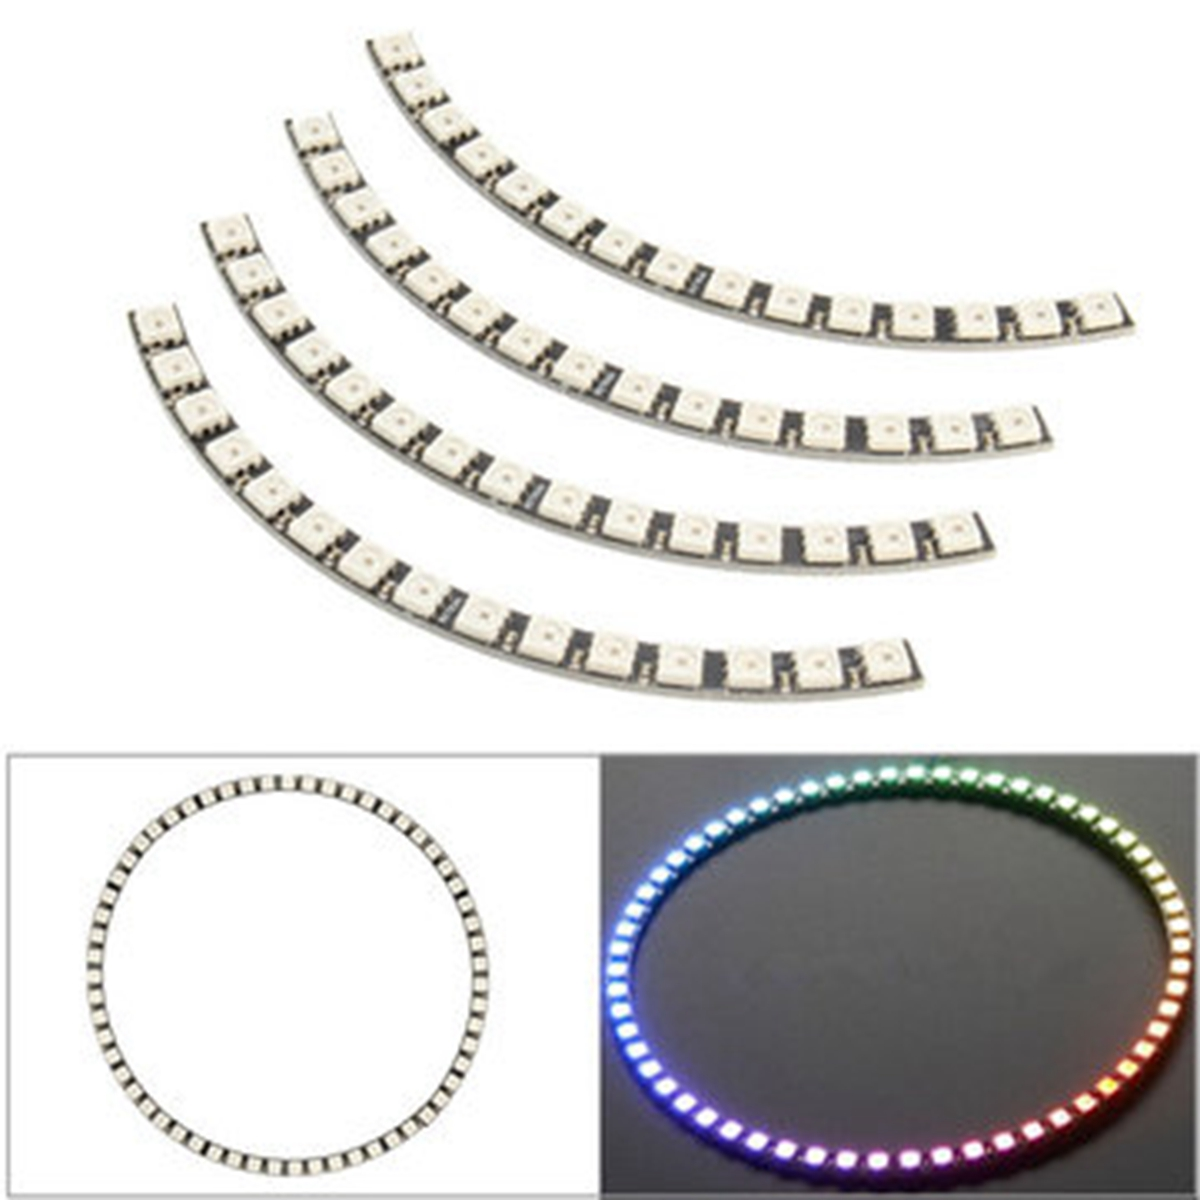 Ring LED Light Bulb Wall Clock 60LED WS2812 5050 SMD RGB LED Lamp Panel for Arduino 5V 1A keyes 5050 rgb led module for offical arduino products red silver